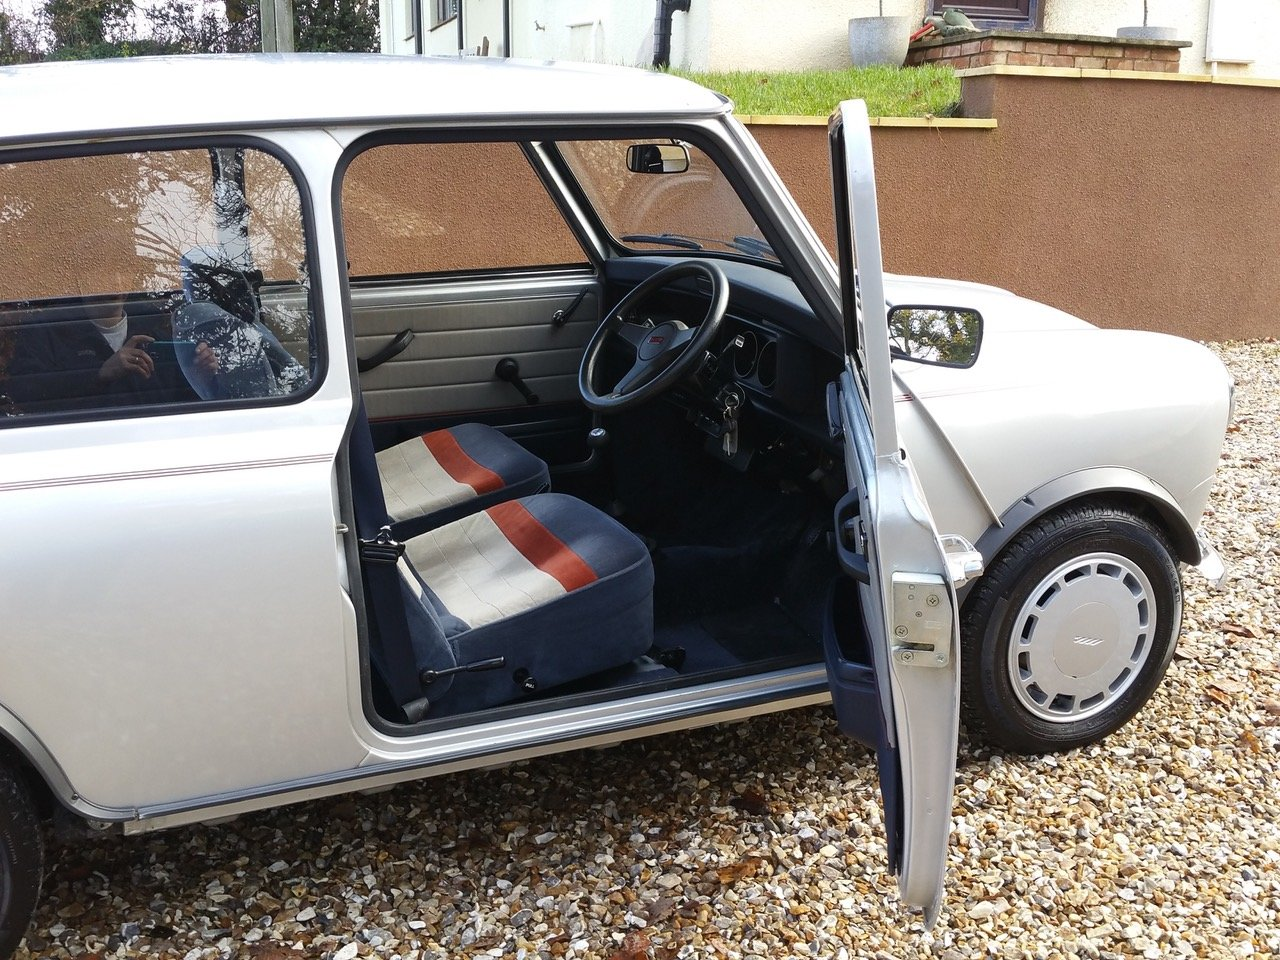 1992 'Time Warp' Mini Ritz On Just 3820 Miles From New SOLD (picture 5 of 10)